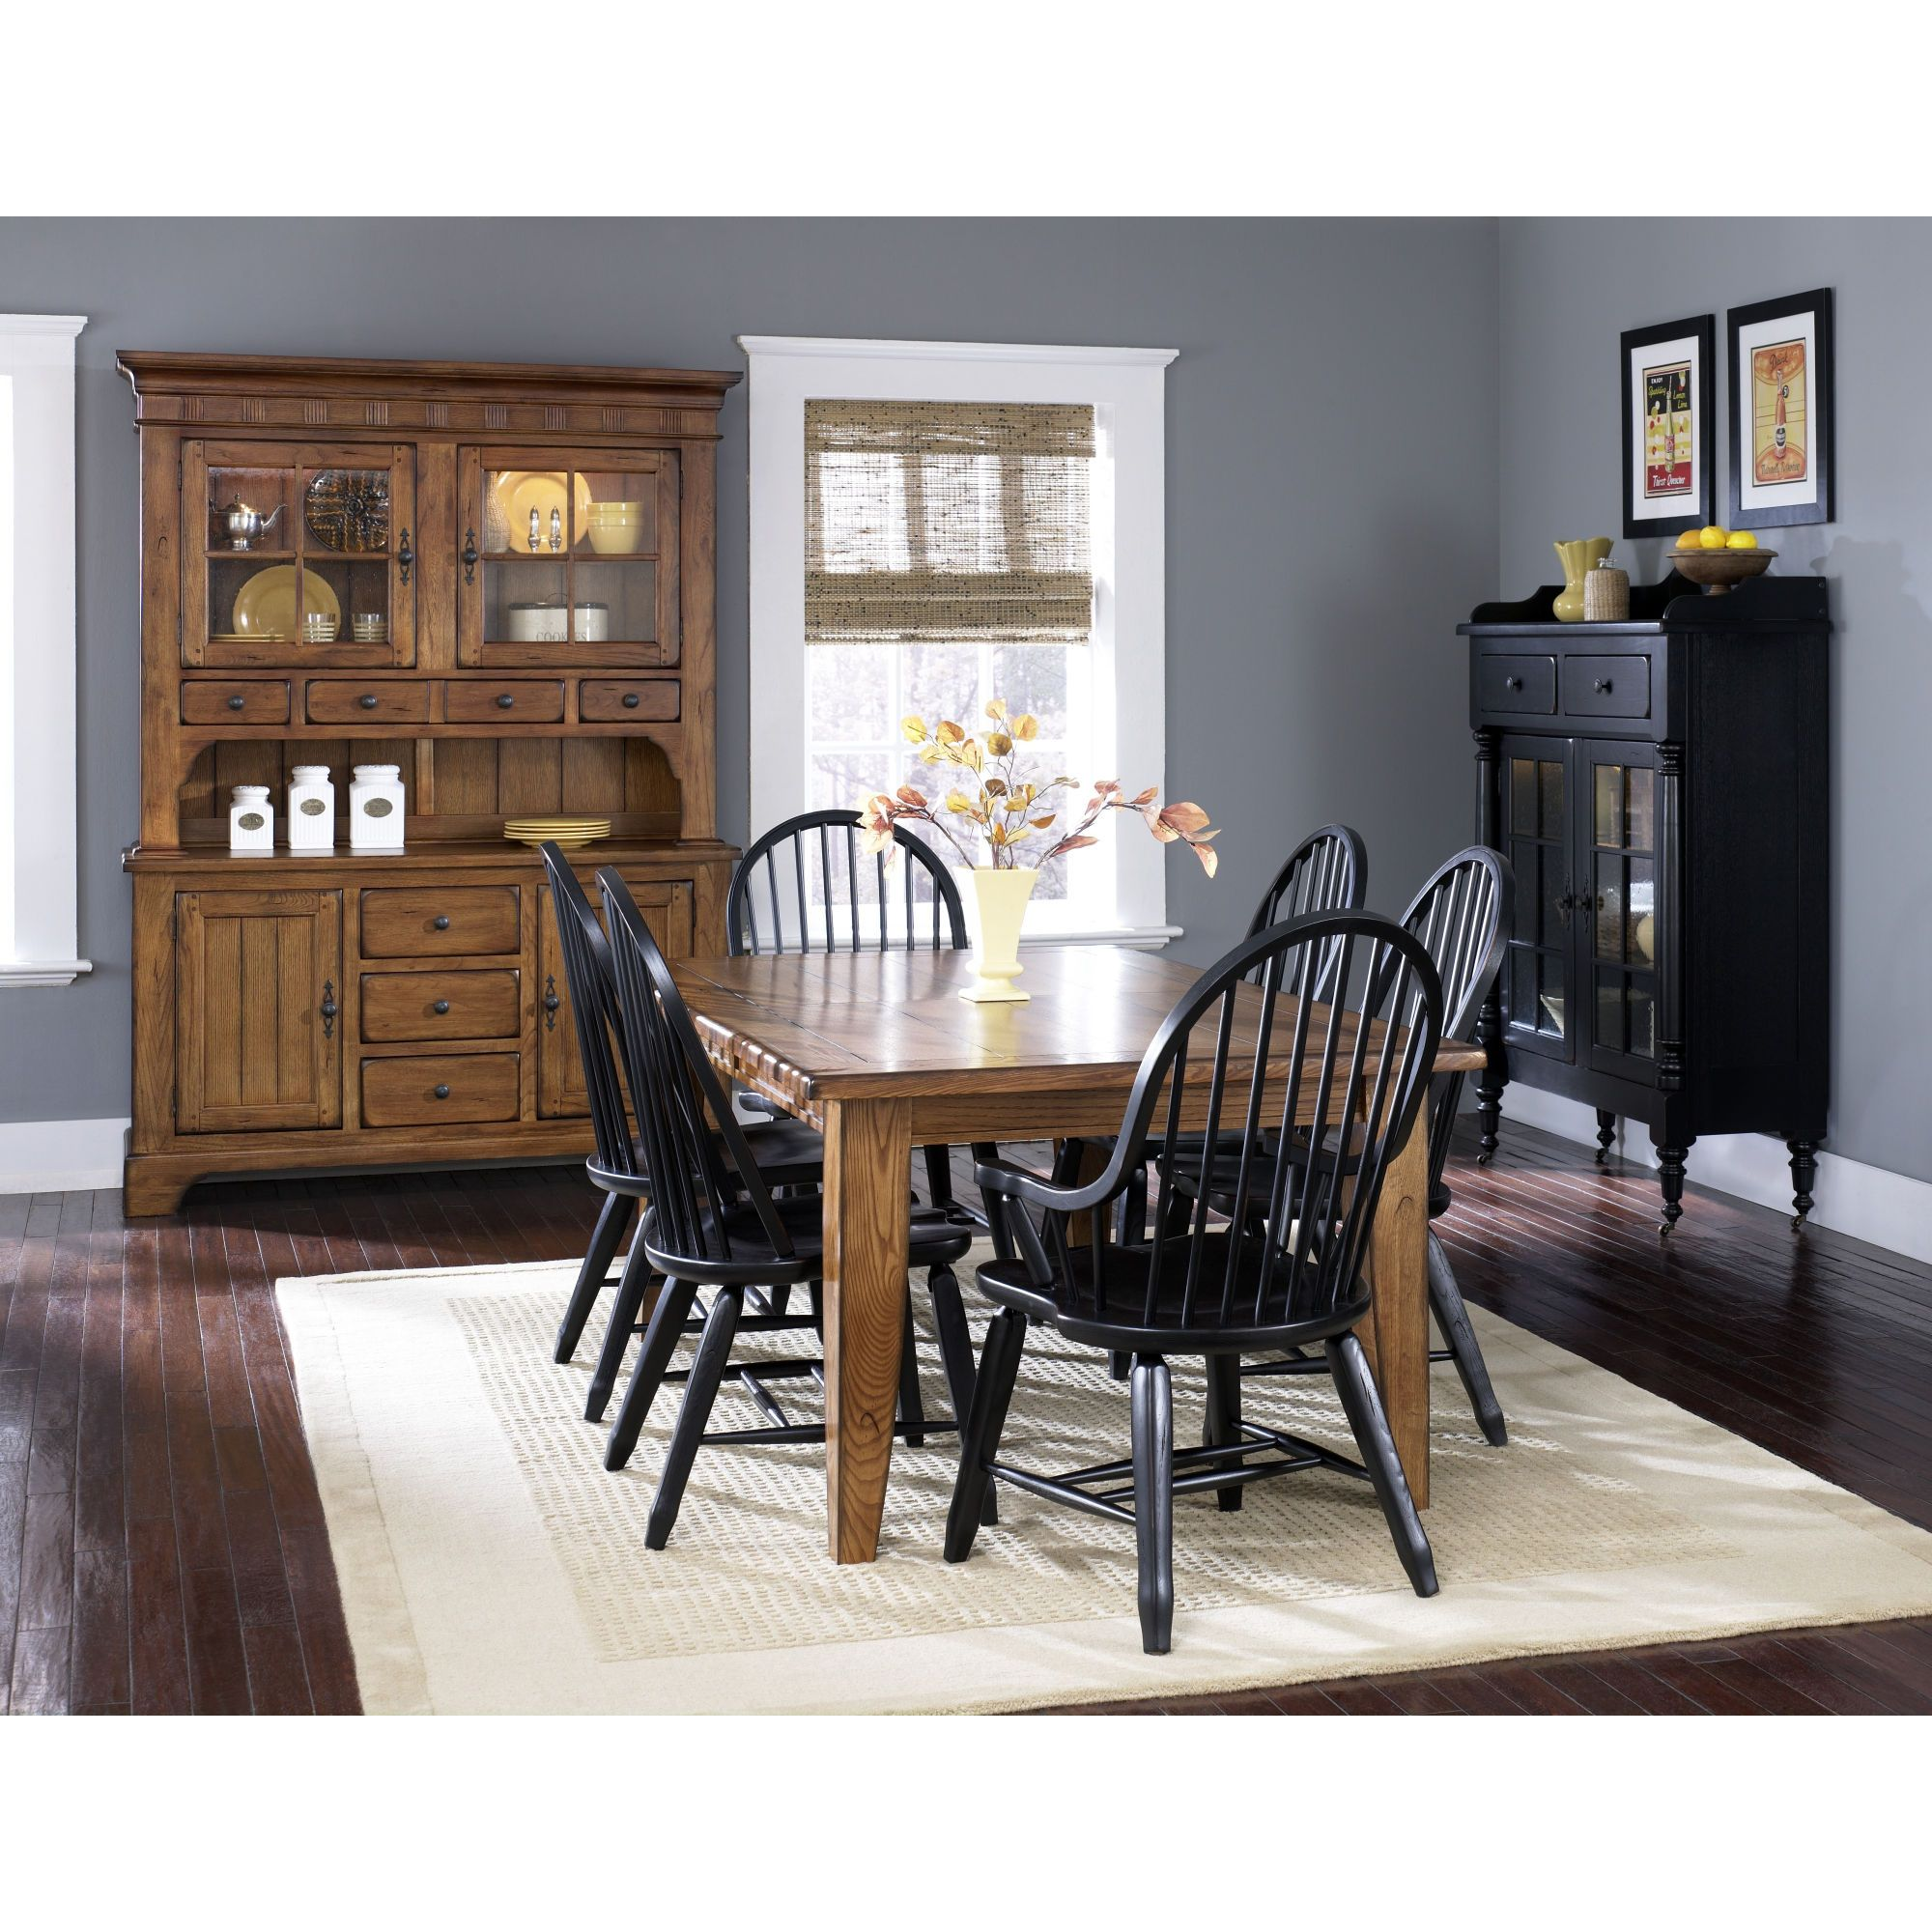 Long Dining Table Black Chairs Blue Gray Wall Color